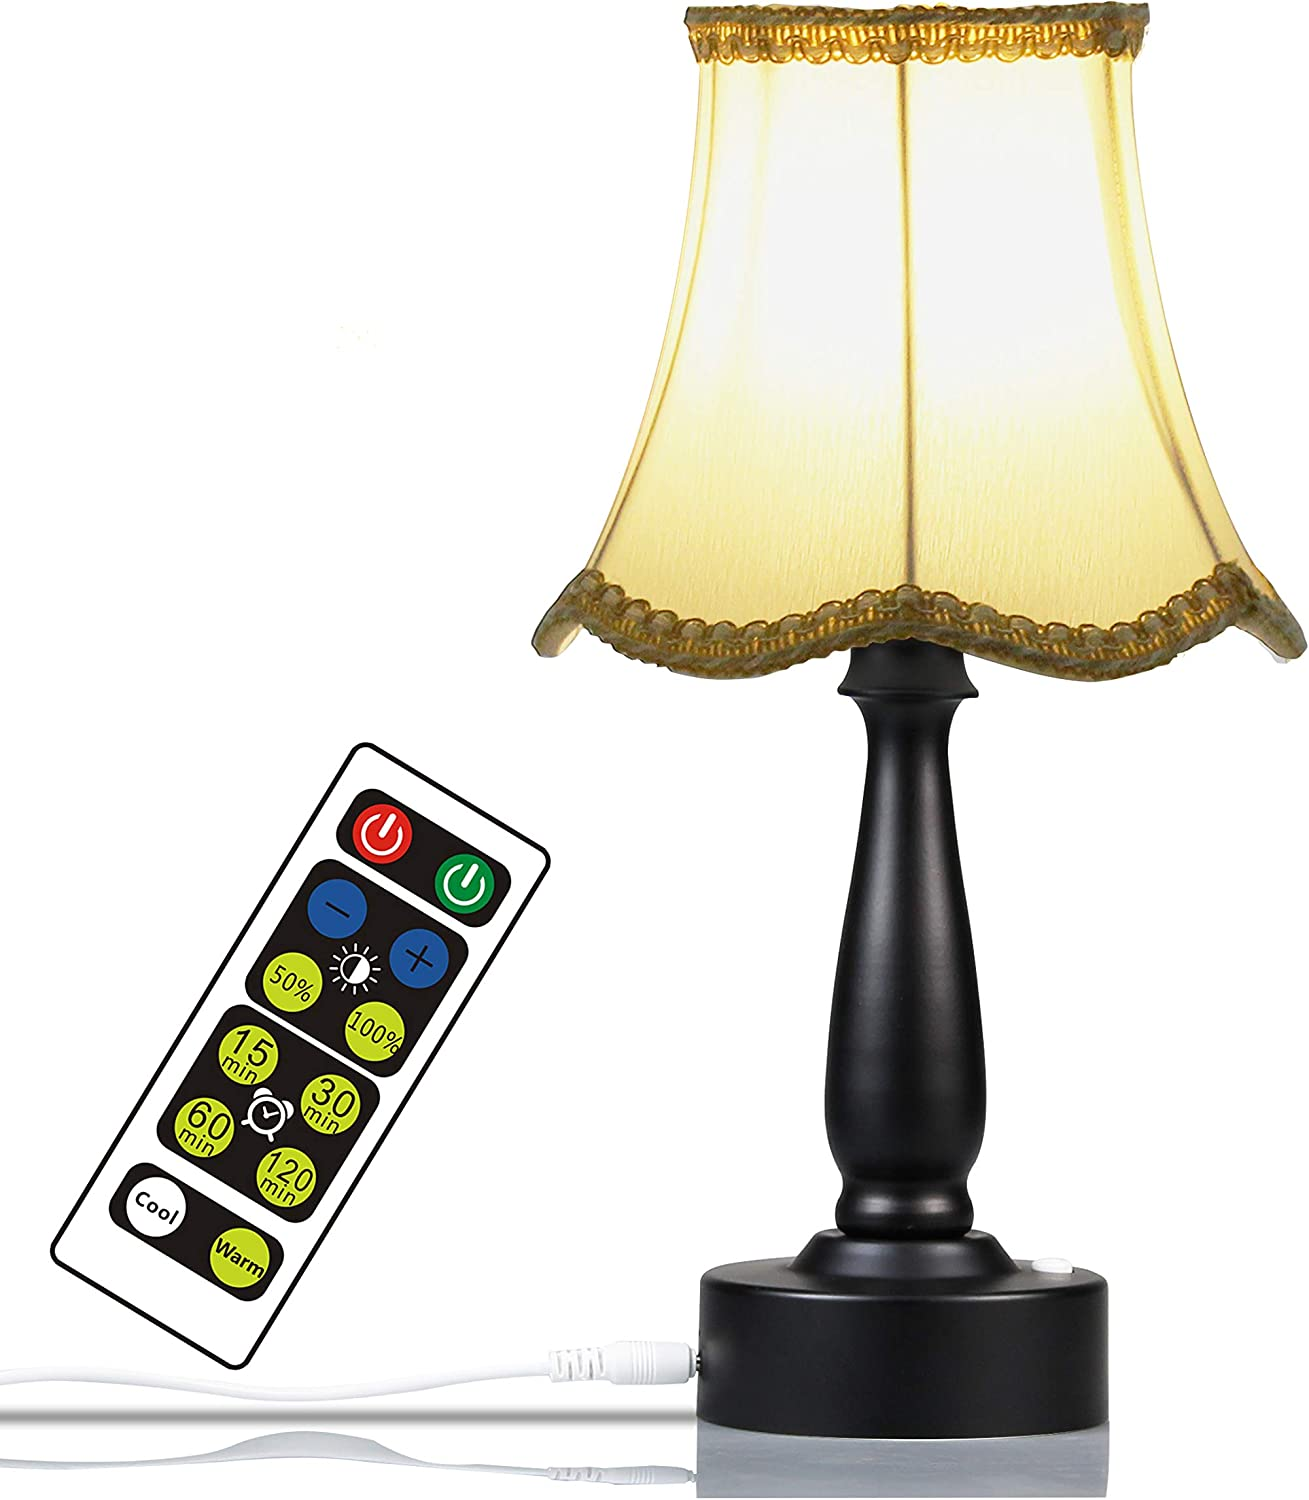 WRalwaysLX USB Power Small Table Lamp with Remote Control,Warm&Cold 2W LED,Dimmable Beside Desk Lamps with Built in Bulb, Best for Bedroom, Office, Living Room with Plastic Base and Fabric Shade